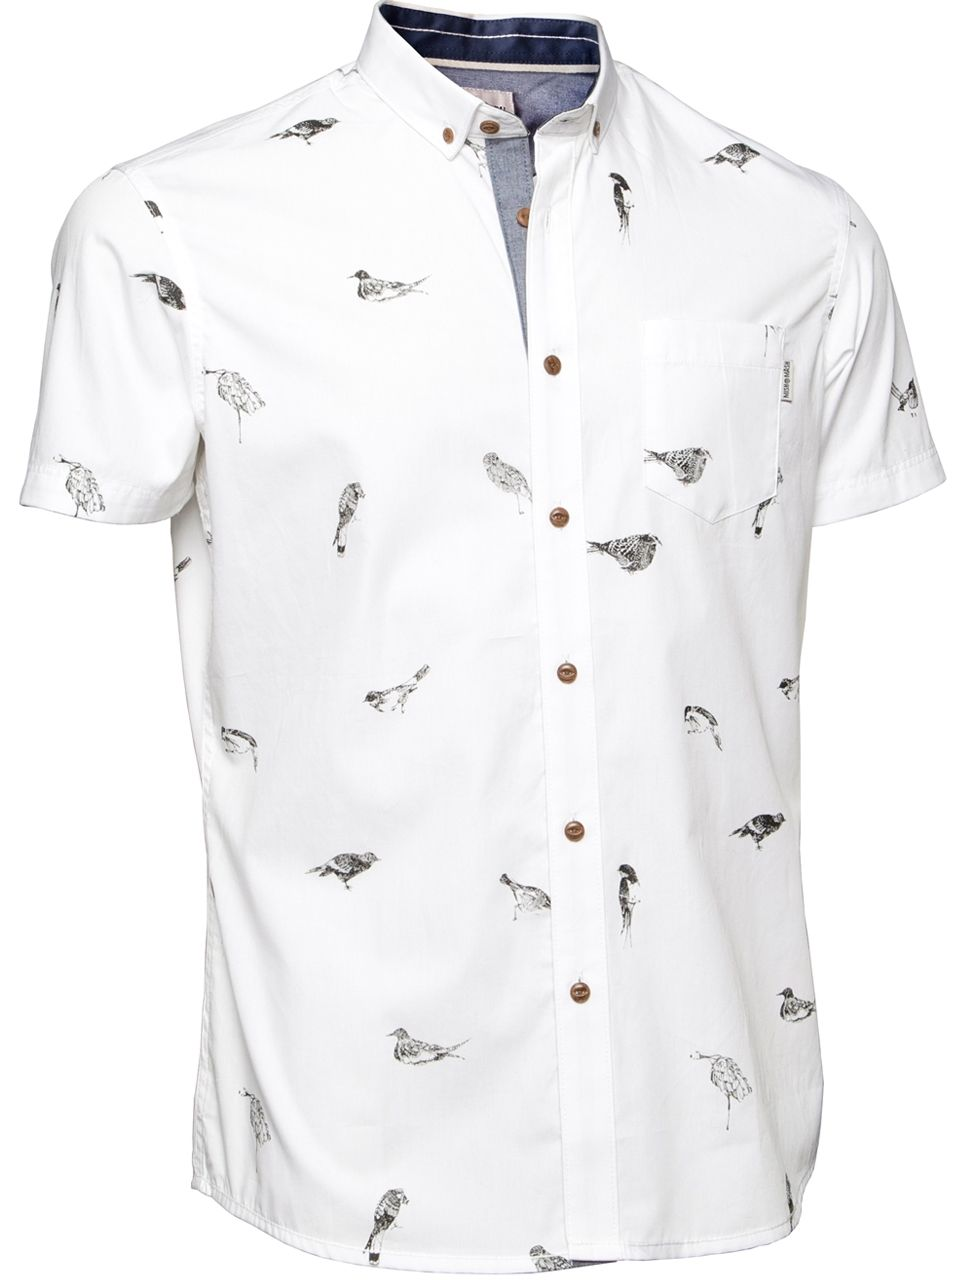 Find great deals on eBay for Mens Designer Shirts Short Sleeves in Casual Shirts for Different Occasions. Shop with confidence.